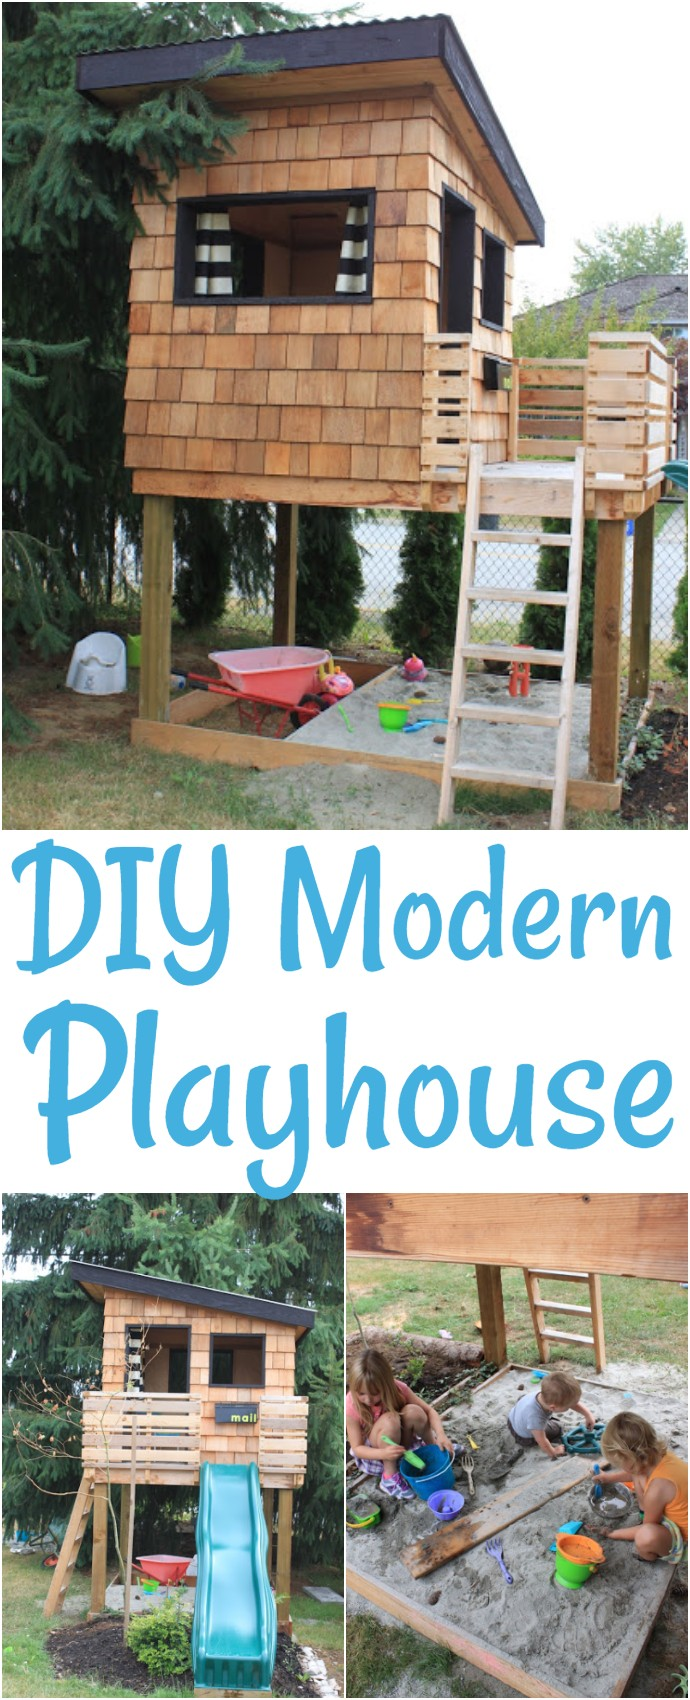 DIY Modern Playhouse